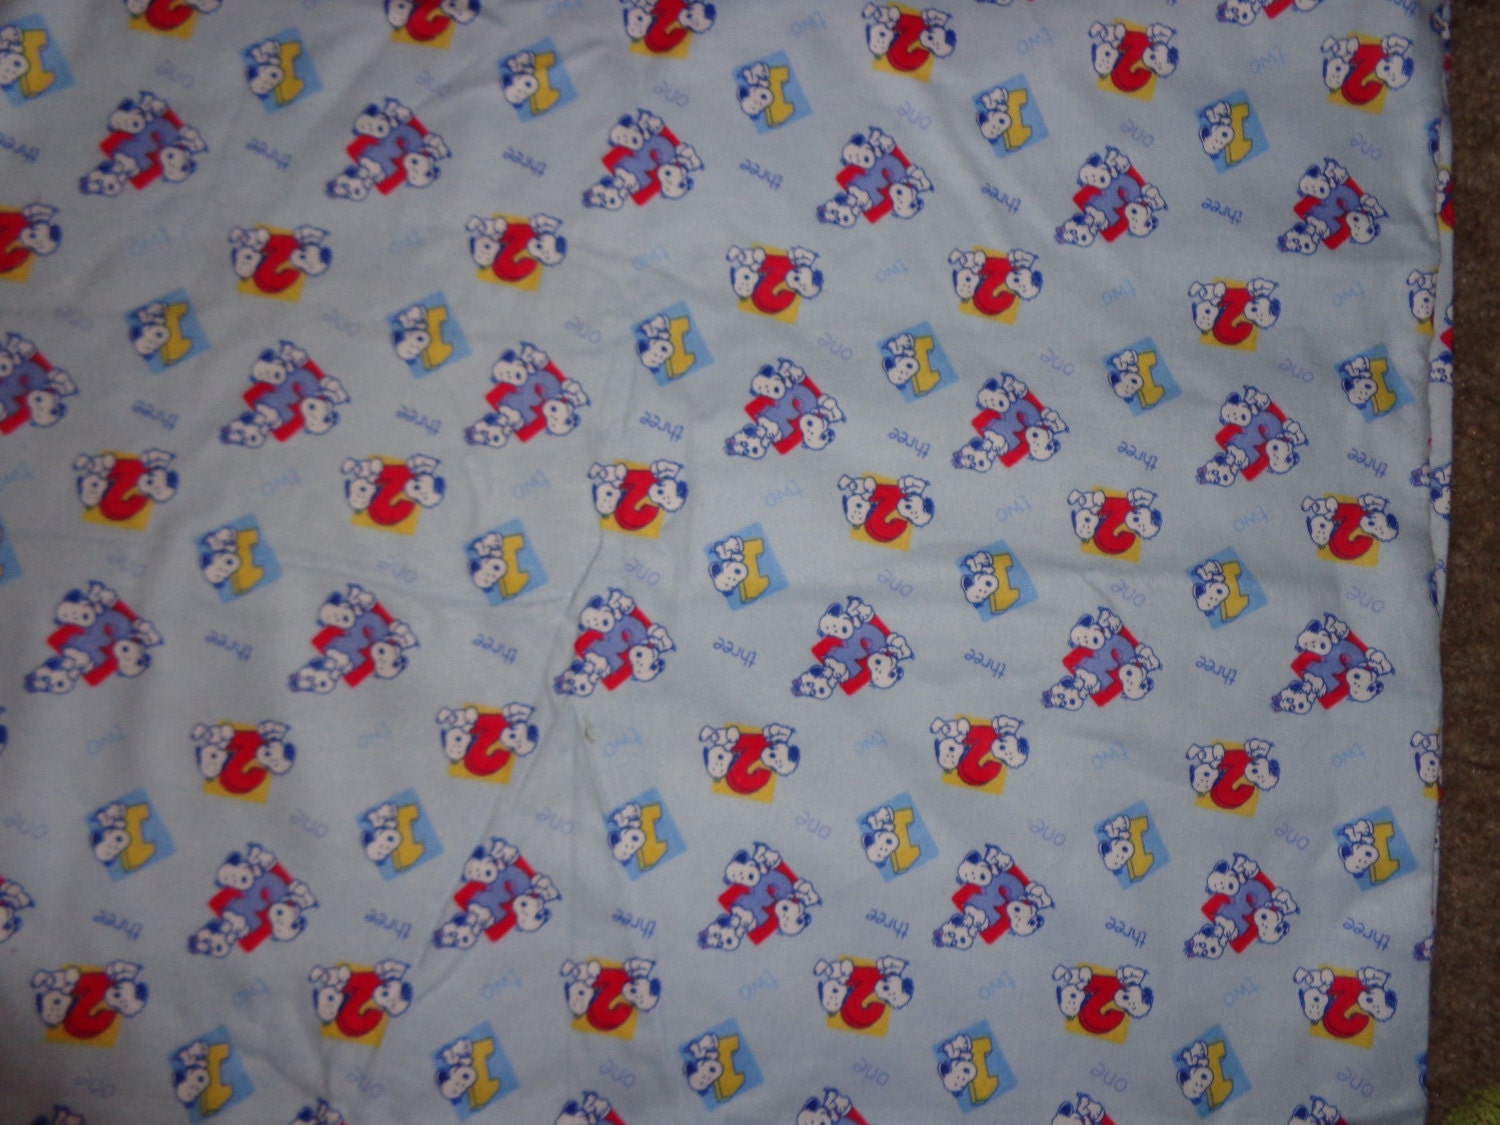 Snoopy with abc 39 s flannel fabric by the half yard by for Children s flannel fabric by the yard